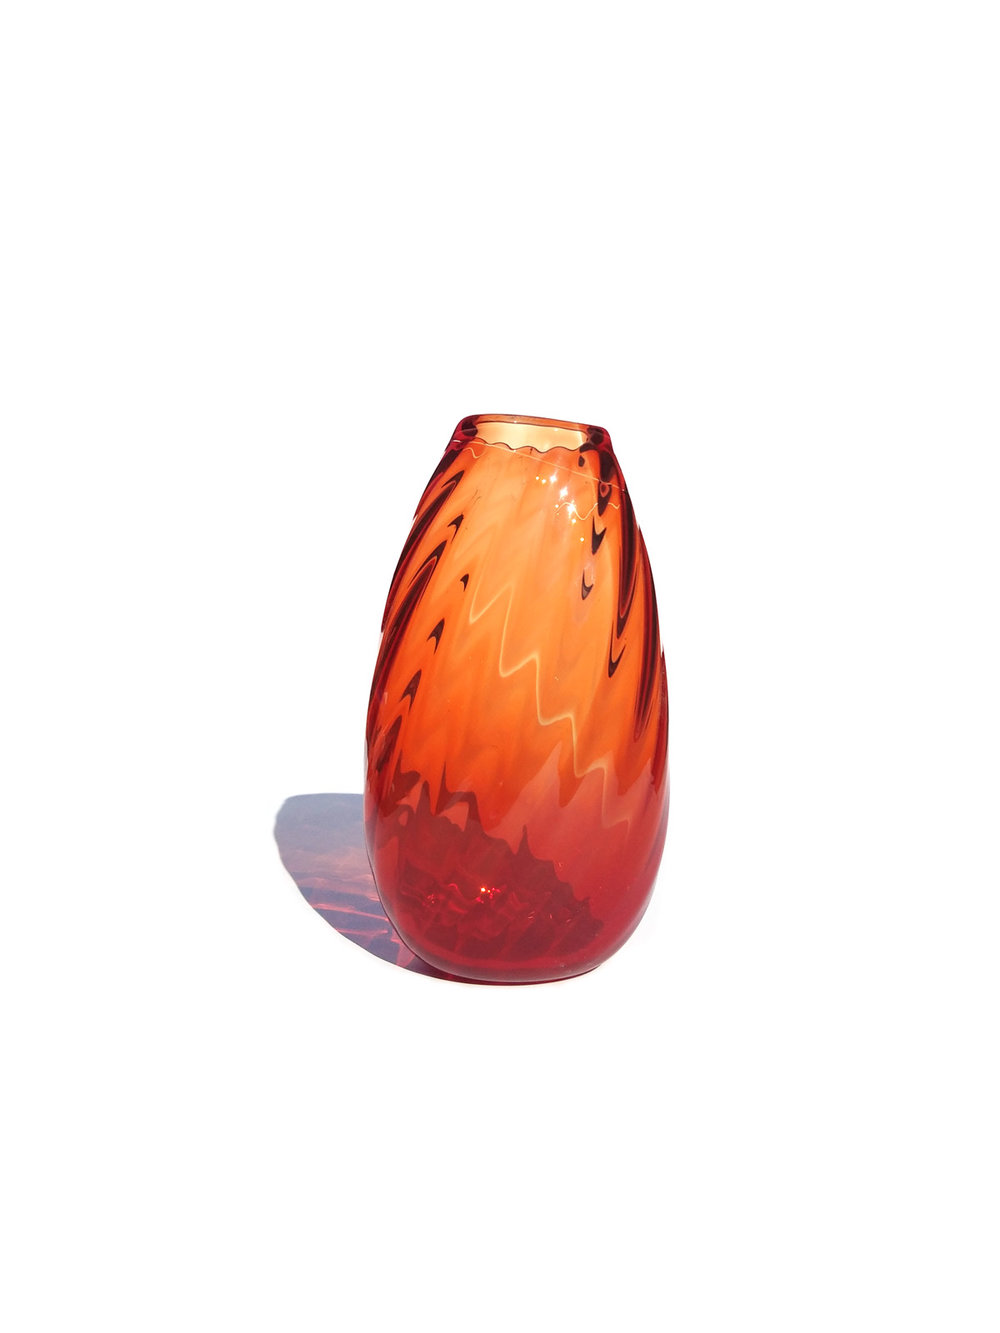 MEDIUM RED VASE (OPTICALS RANGE)